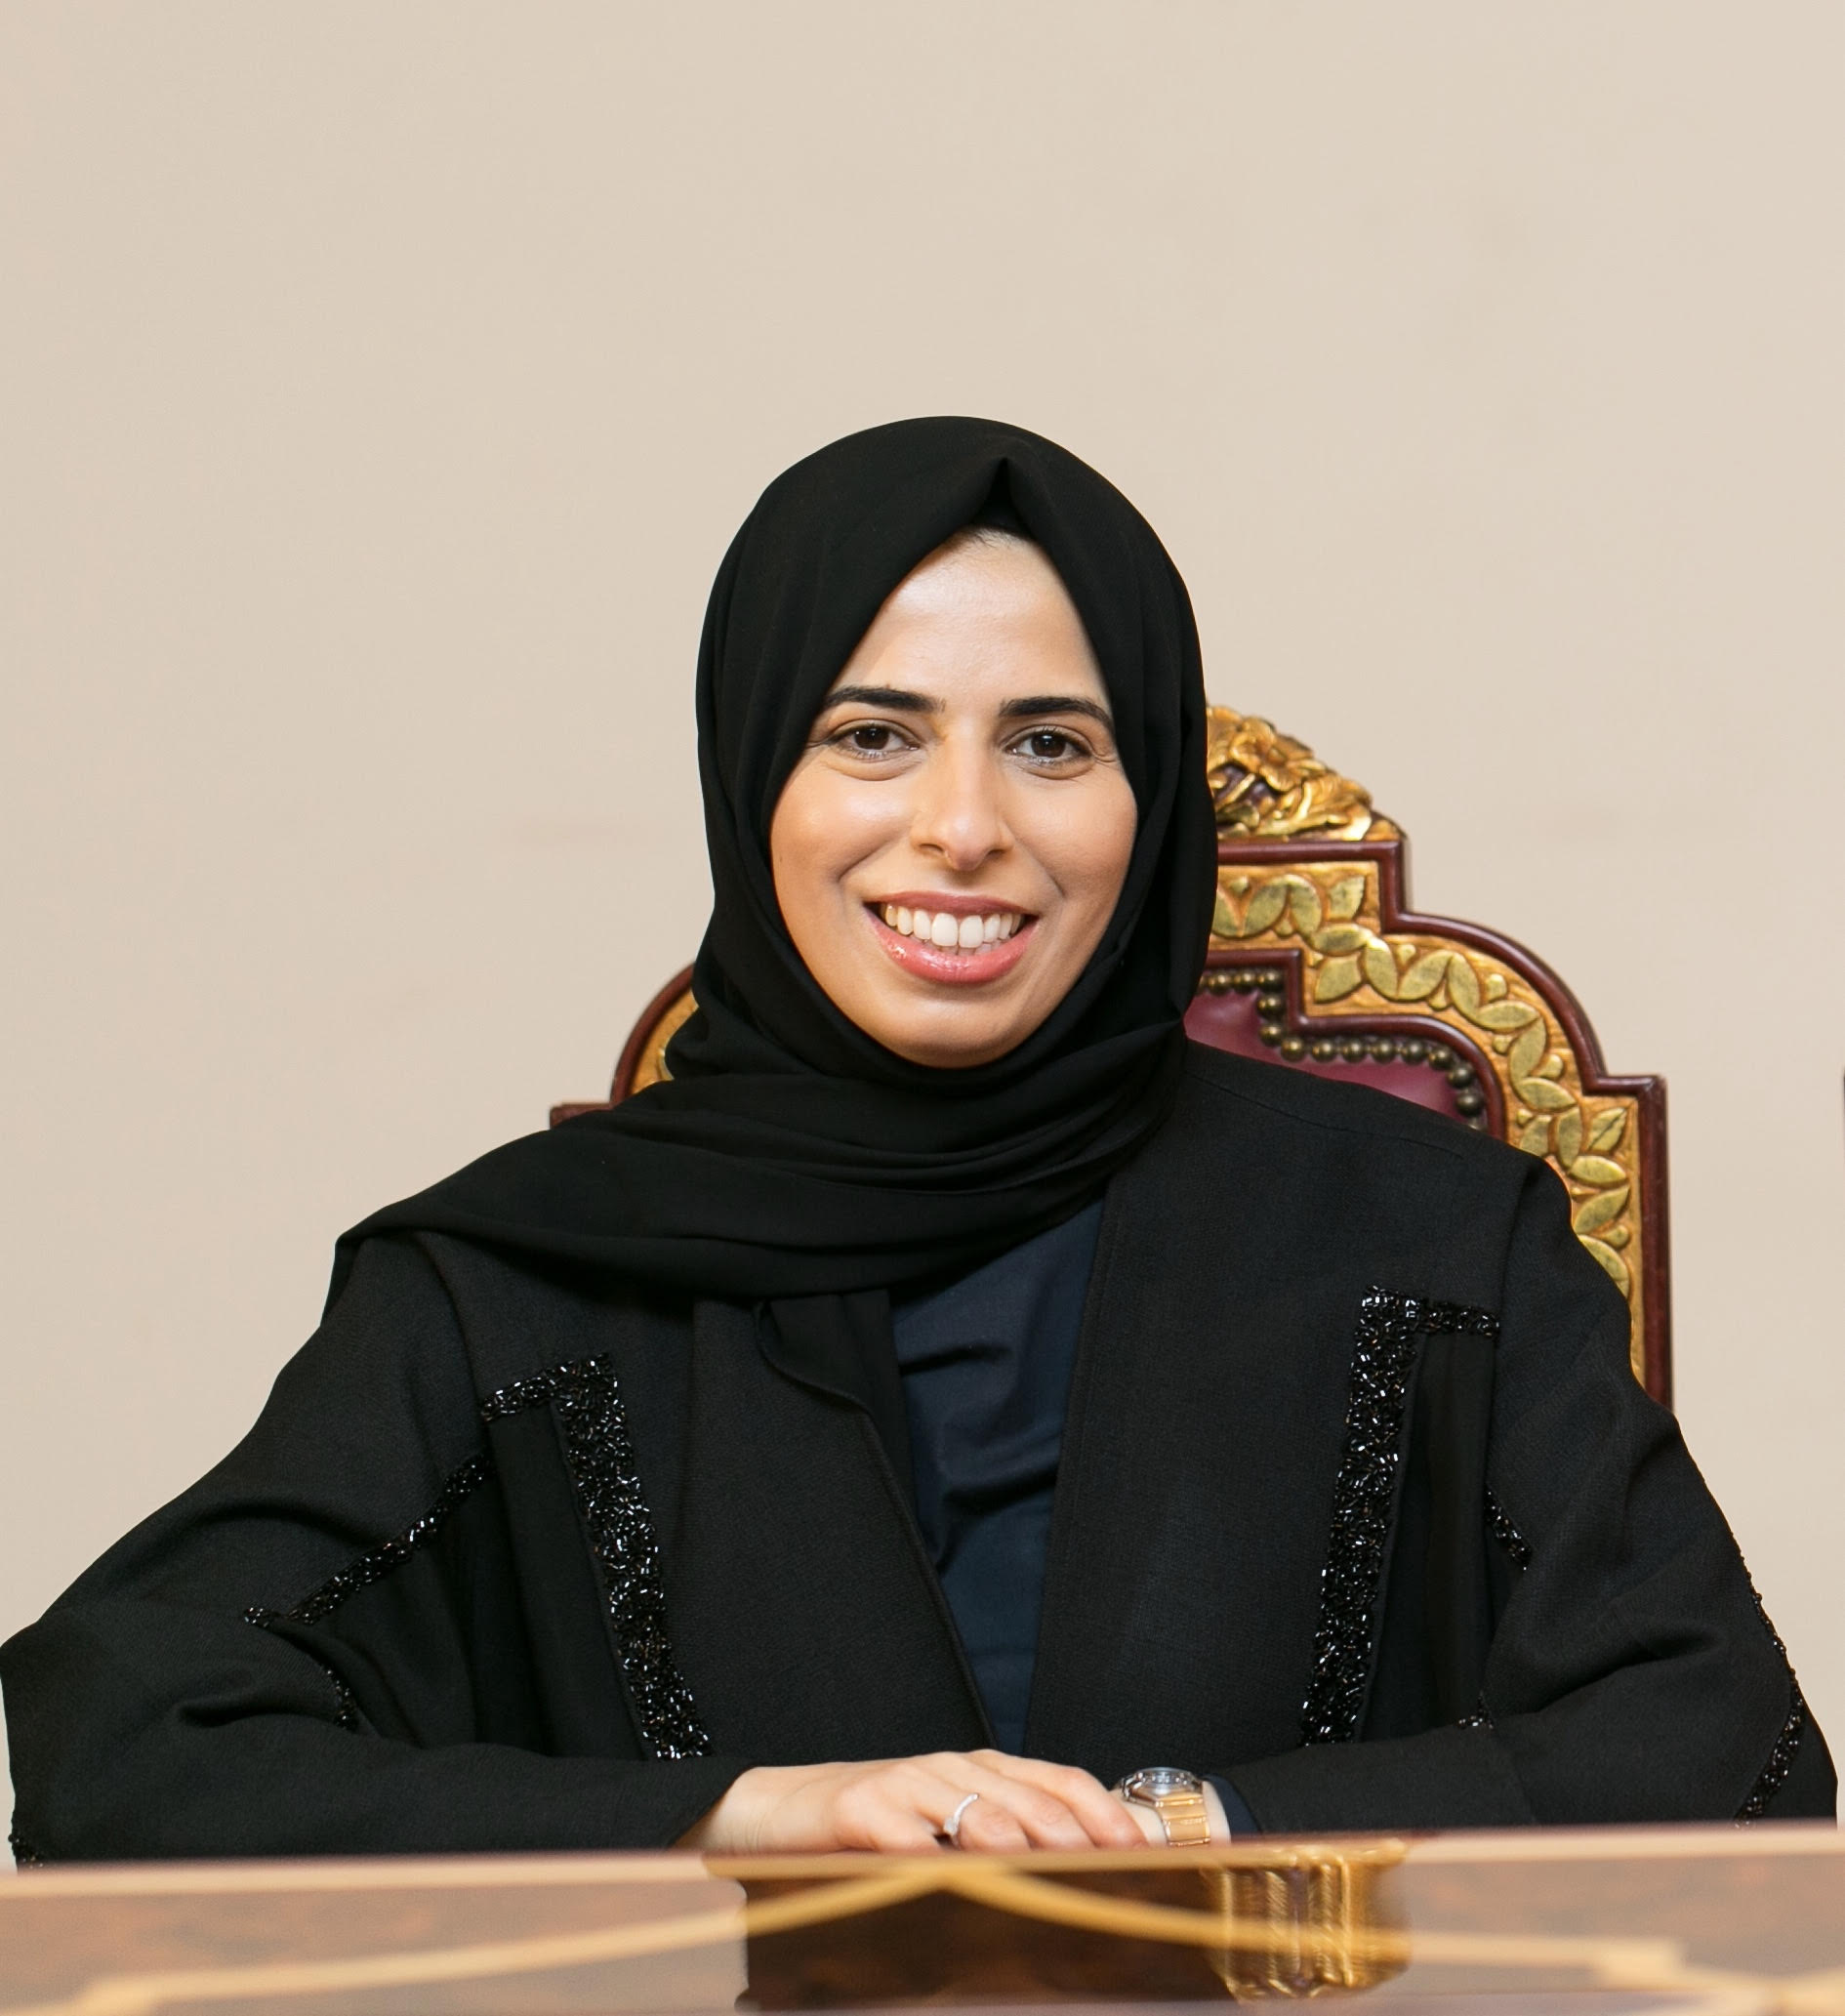 KNOW NOW: Her Excellency Lolwah R M Al-Khater on the U.S.-Qatar Strategic Dialogue and Qatar's Foreign Policy